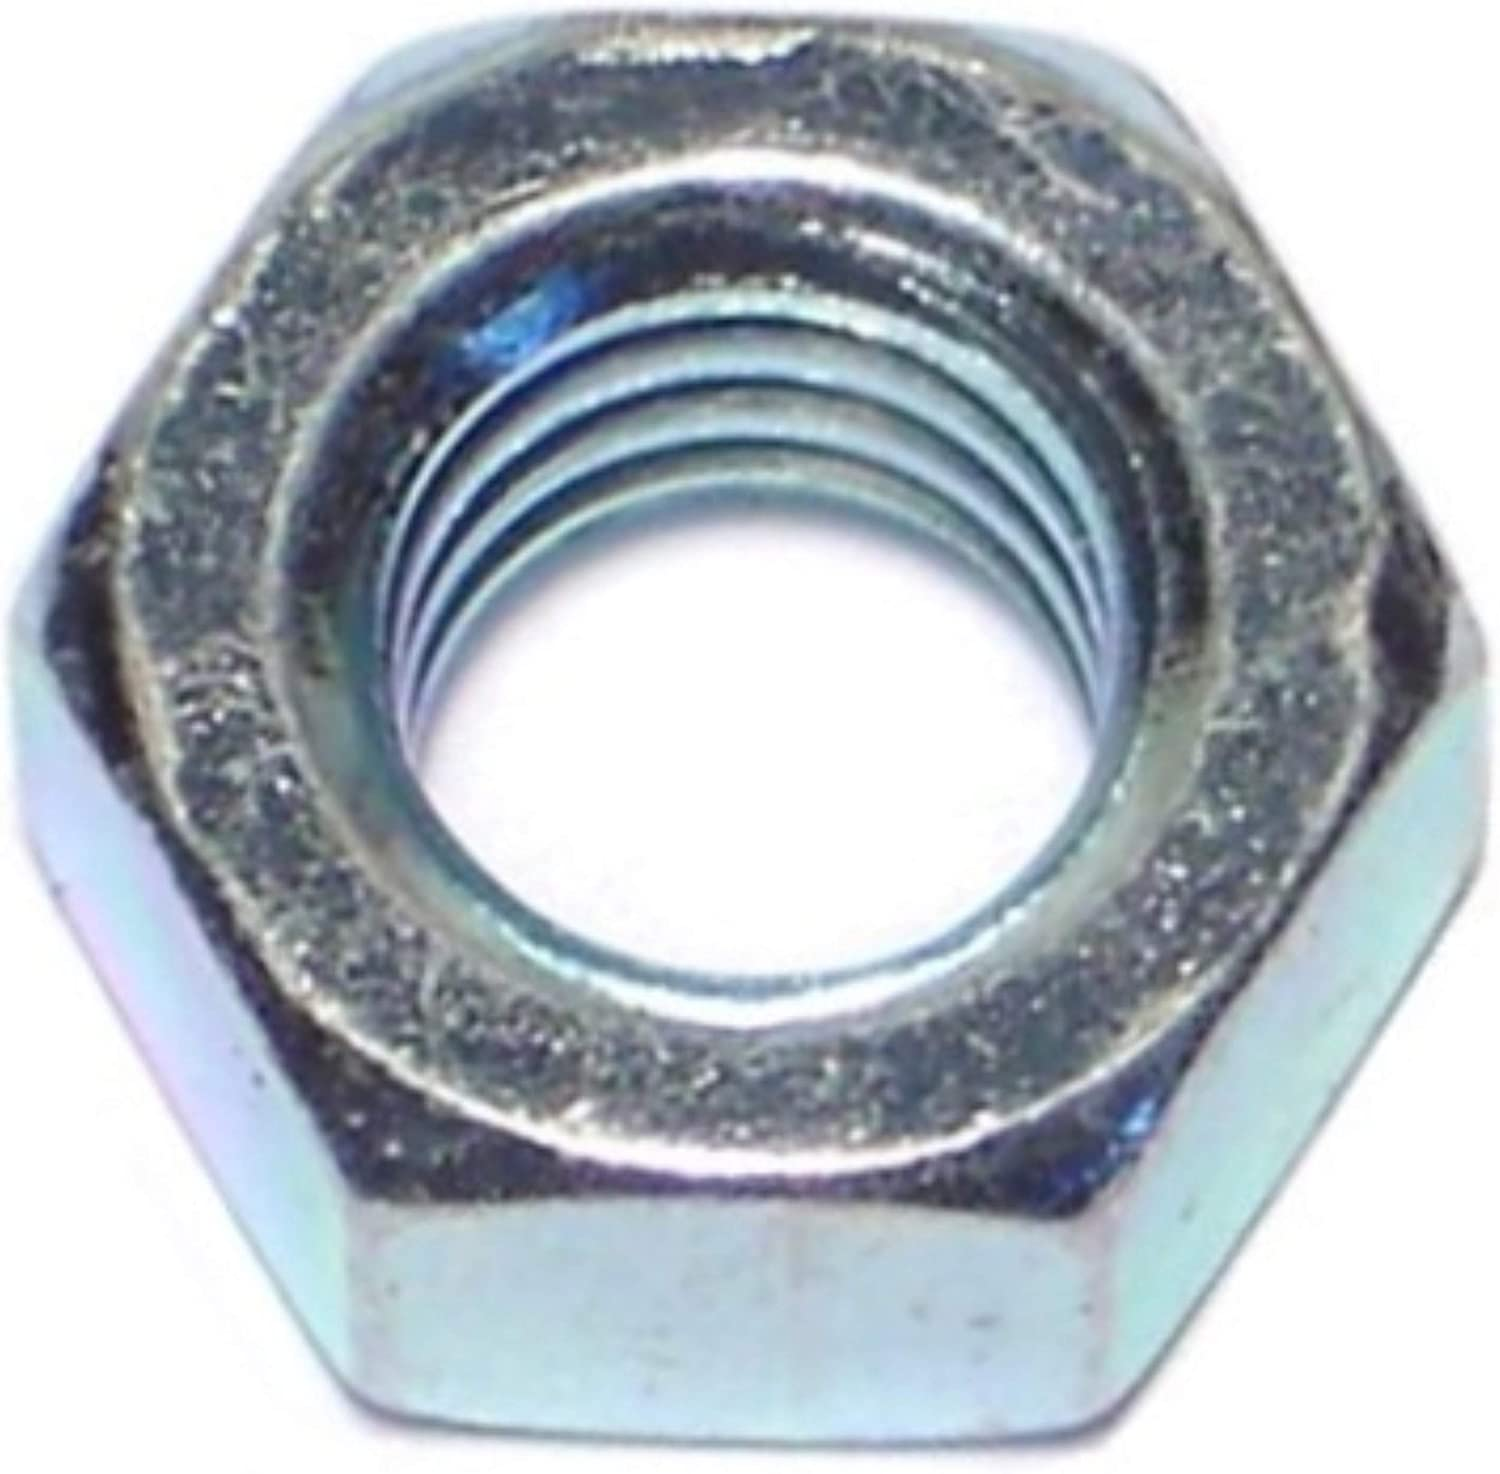 5//16-18 Hard-to-Find Fastener 014973241773 Coarse Finished Hex Nuts Piece-2305